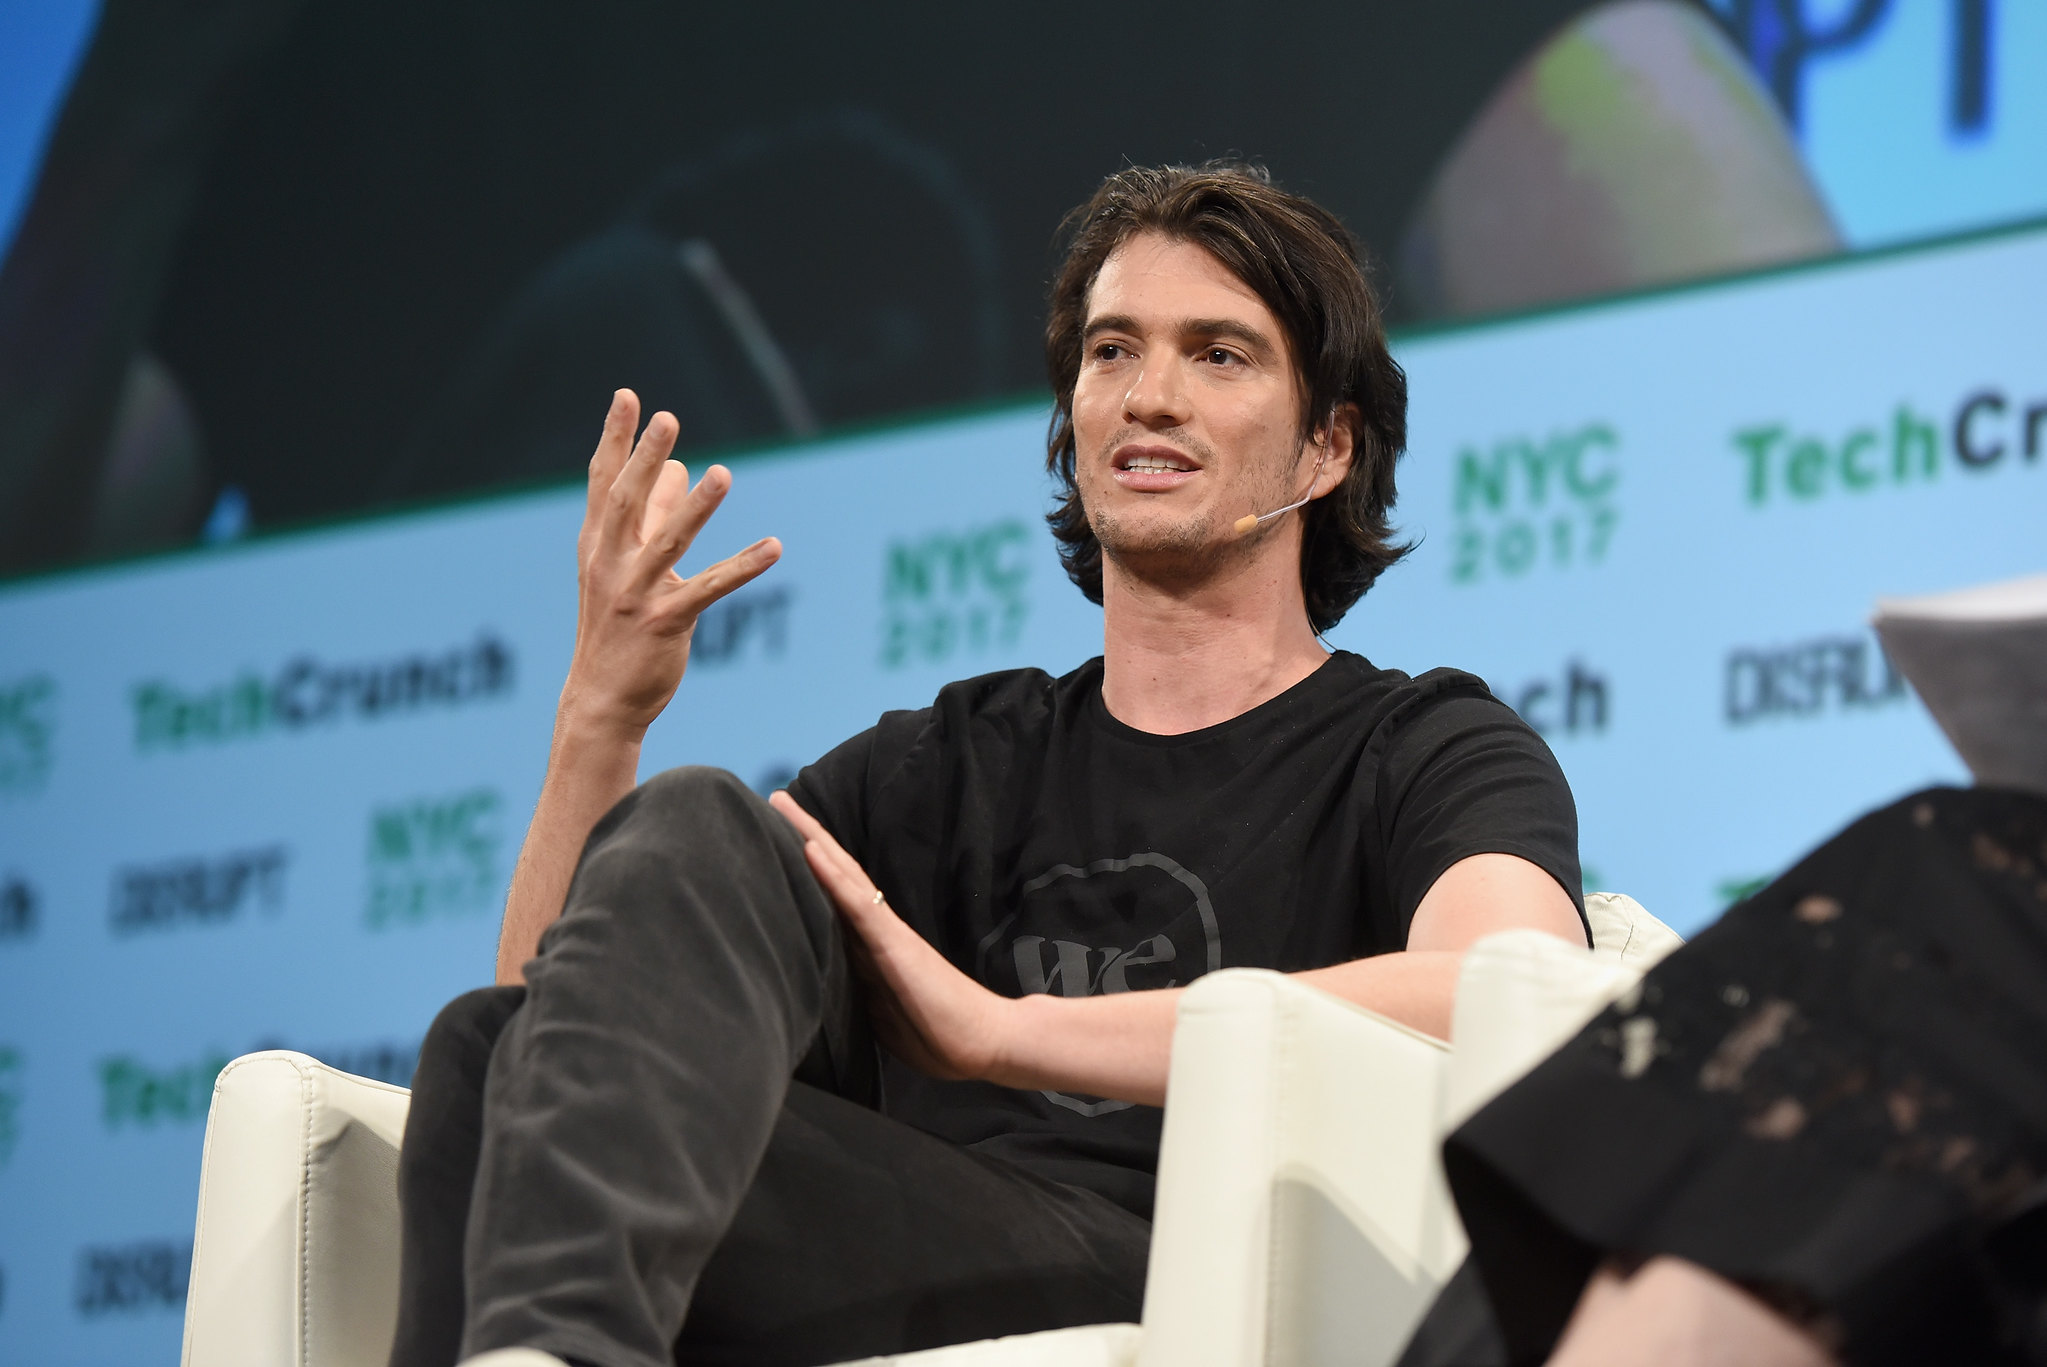 WeWork's Adam Neumann Is Out, As Reality Catches Up To A High-Flying Startup